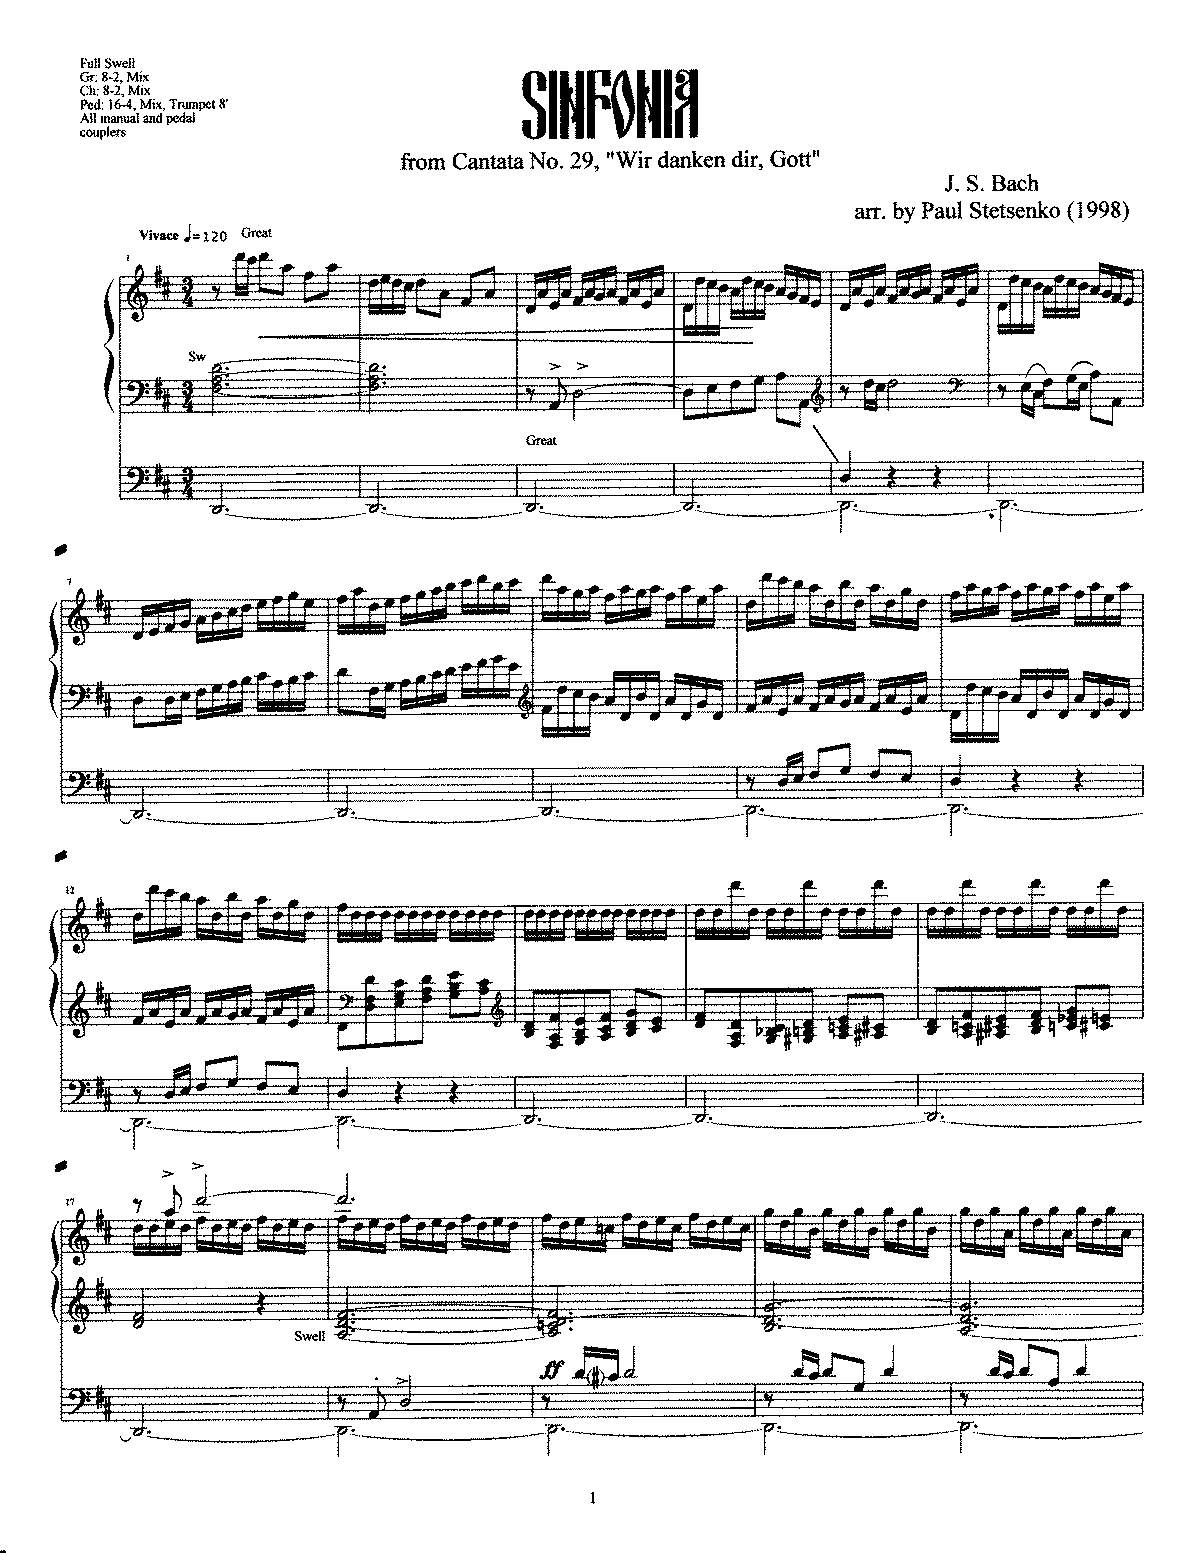 Sinfonia from Cantata 29.pdf